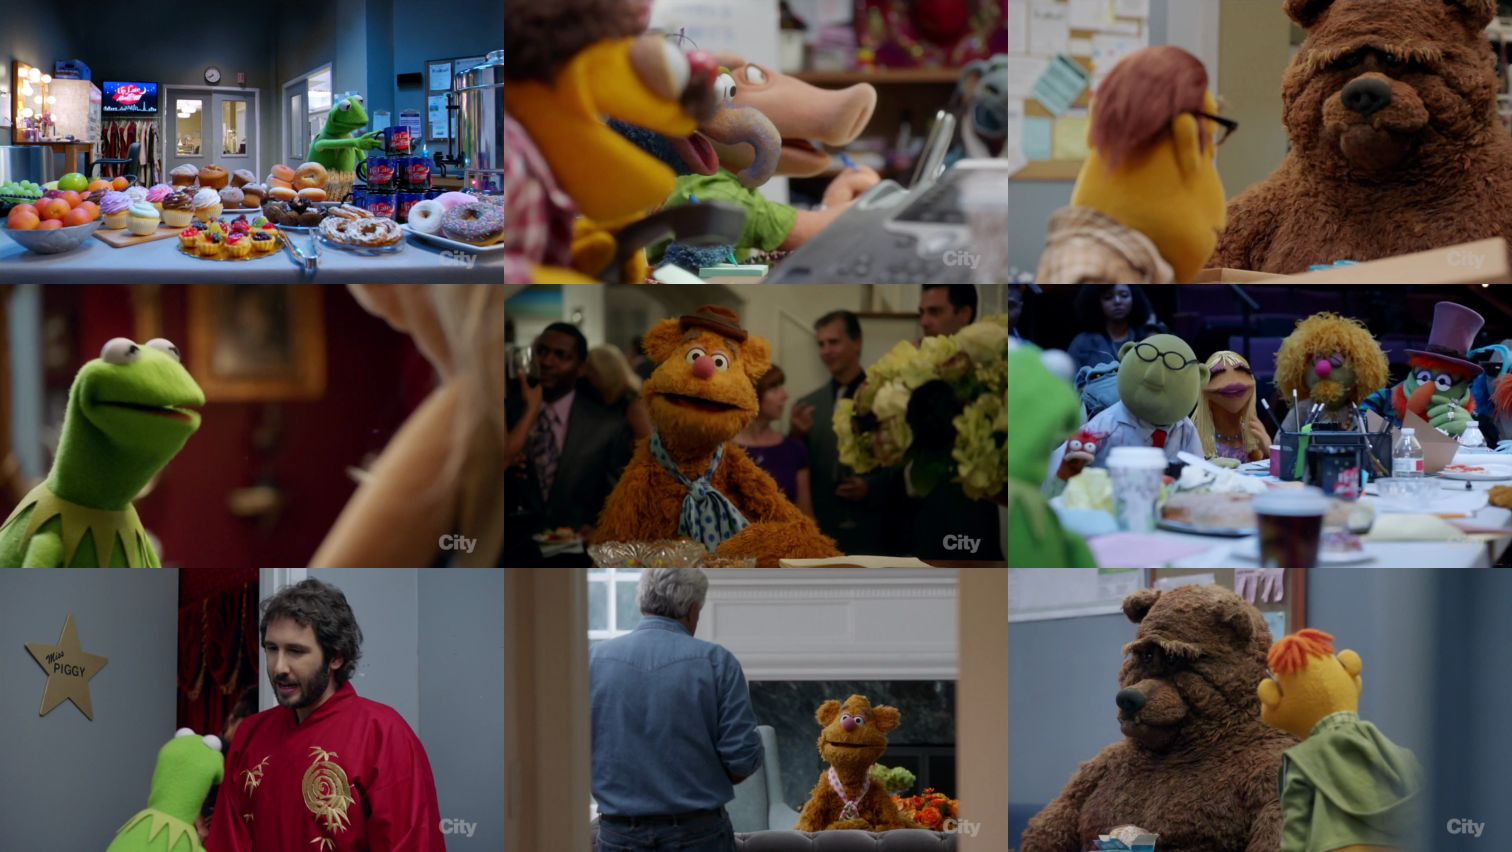 The Muppets S01E02 720p HDTV x264-KILLERS